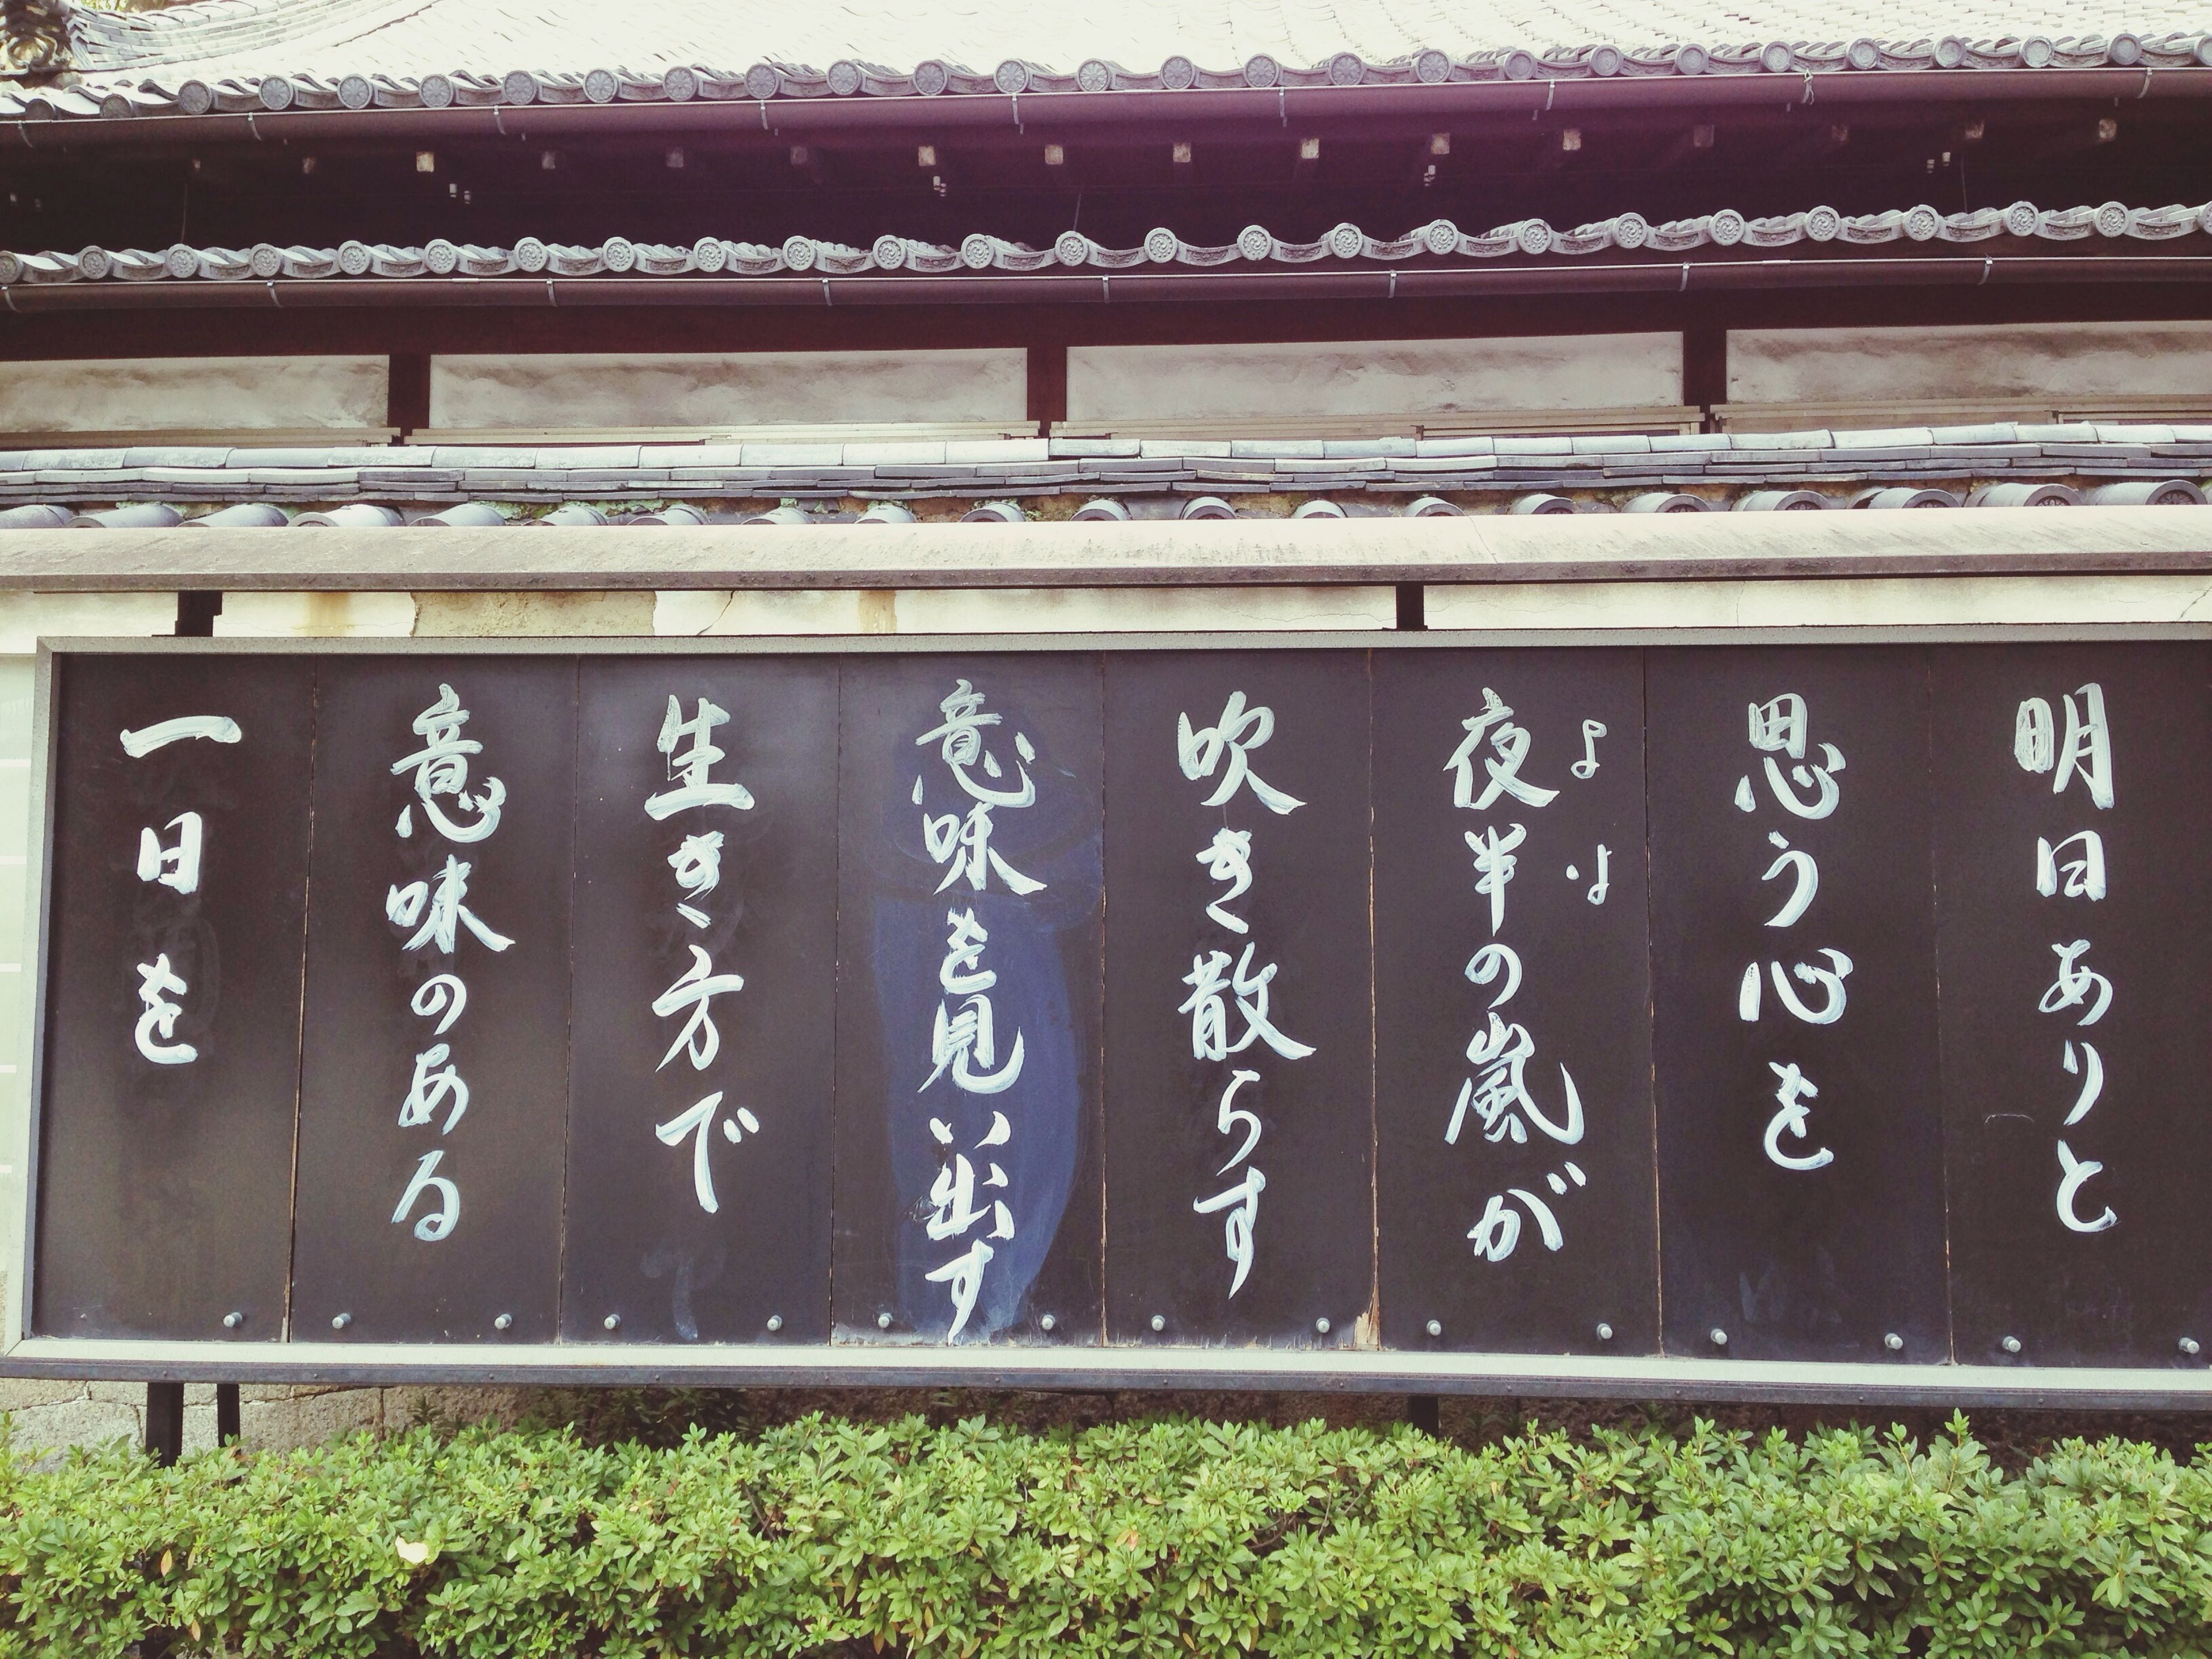 text, built structure, architecture, graffiti, western script, door, wall - building feature, building exterior, communication, closed, entrance, non-western script, gate, wall, day, outdoors, house, no people, capital letter, safety